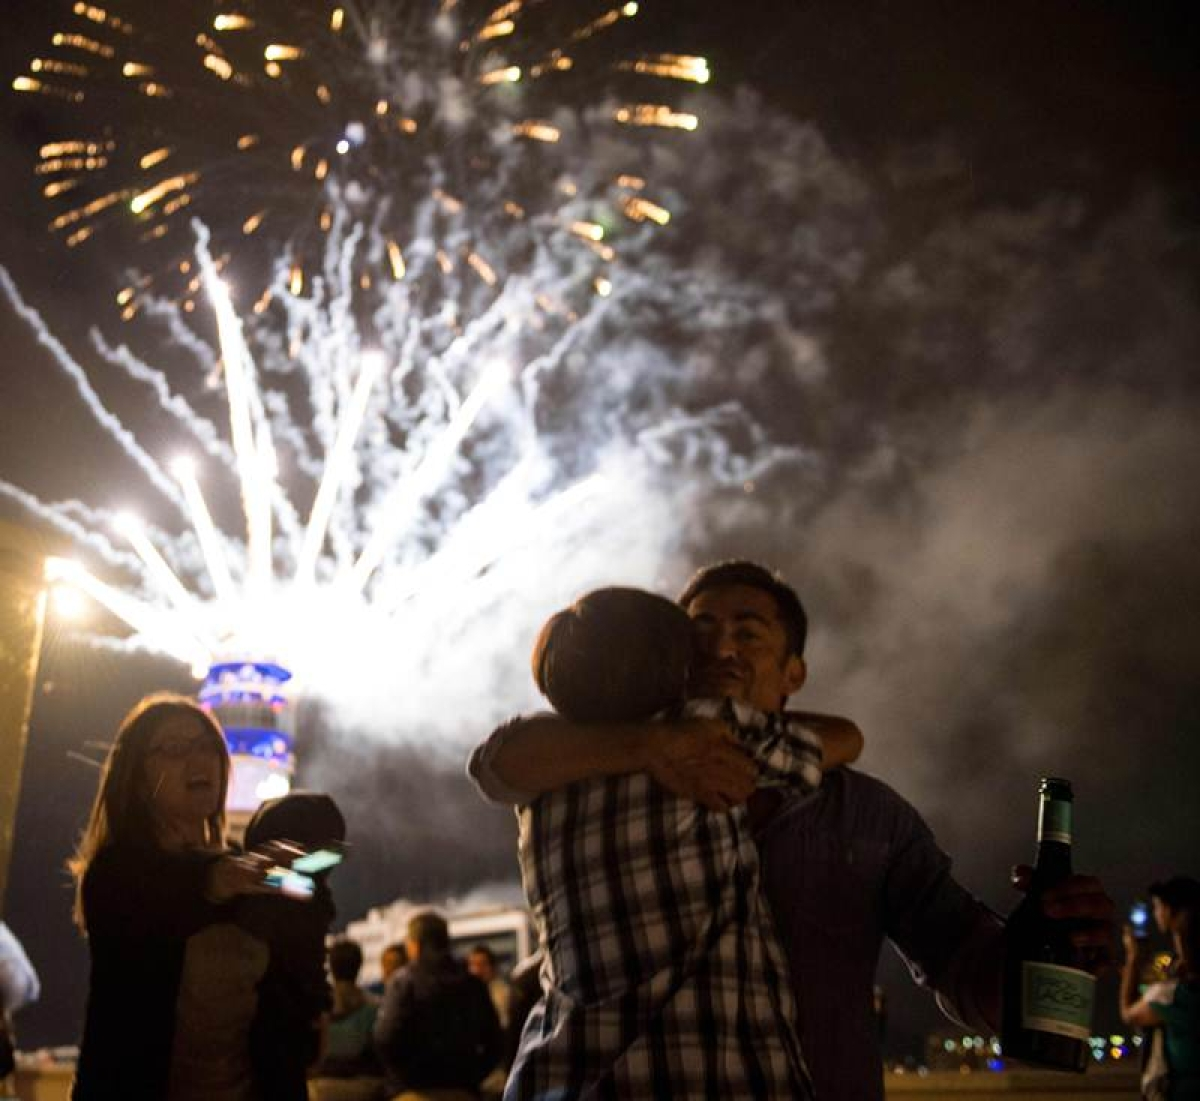 Fireworks illuminate the sky in Santiago during New Year's celebrations on January 1, 2018. / AFP PHOTO / Martin BERNETTI